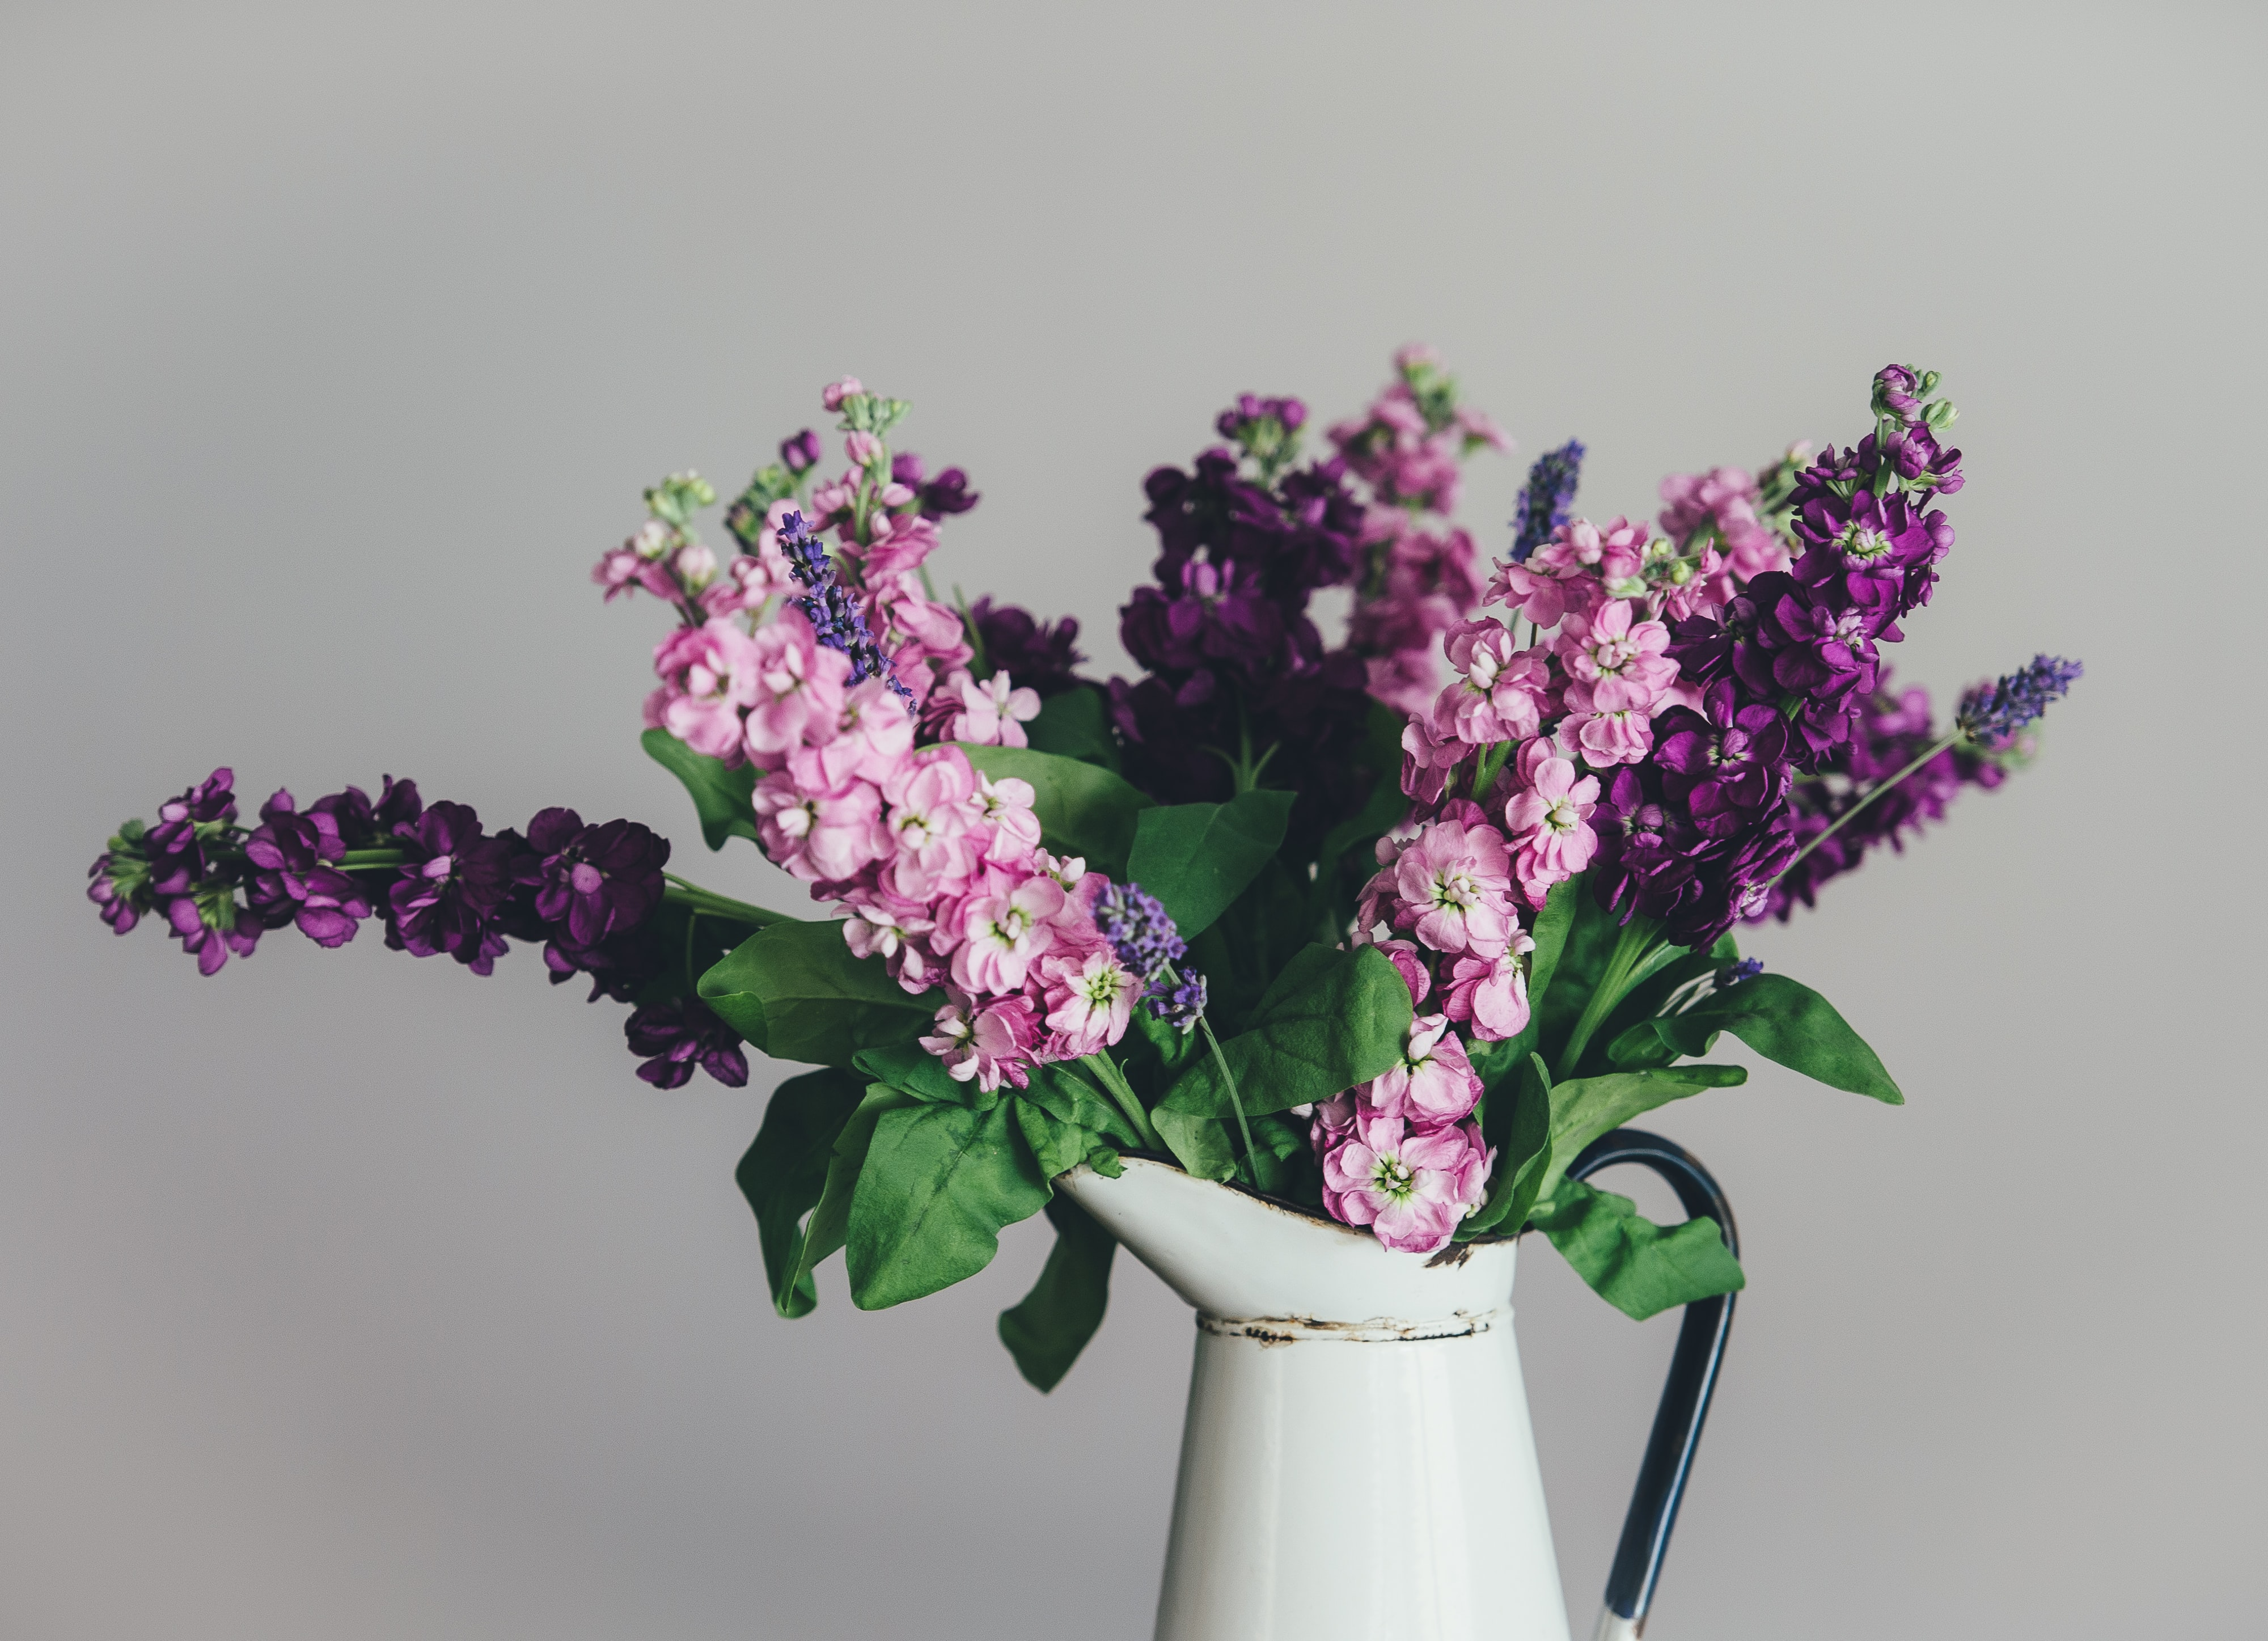 photo of pink and purple petaled flowers with white ceramic vase